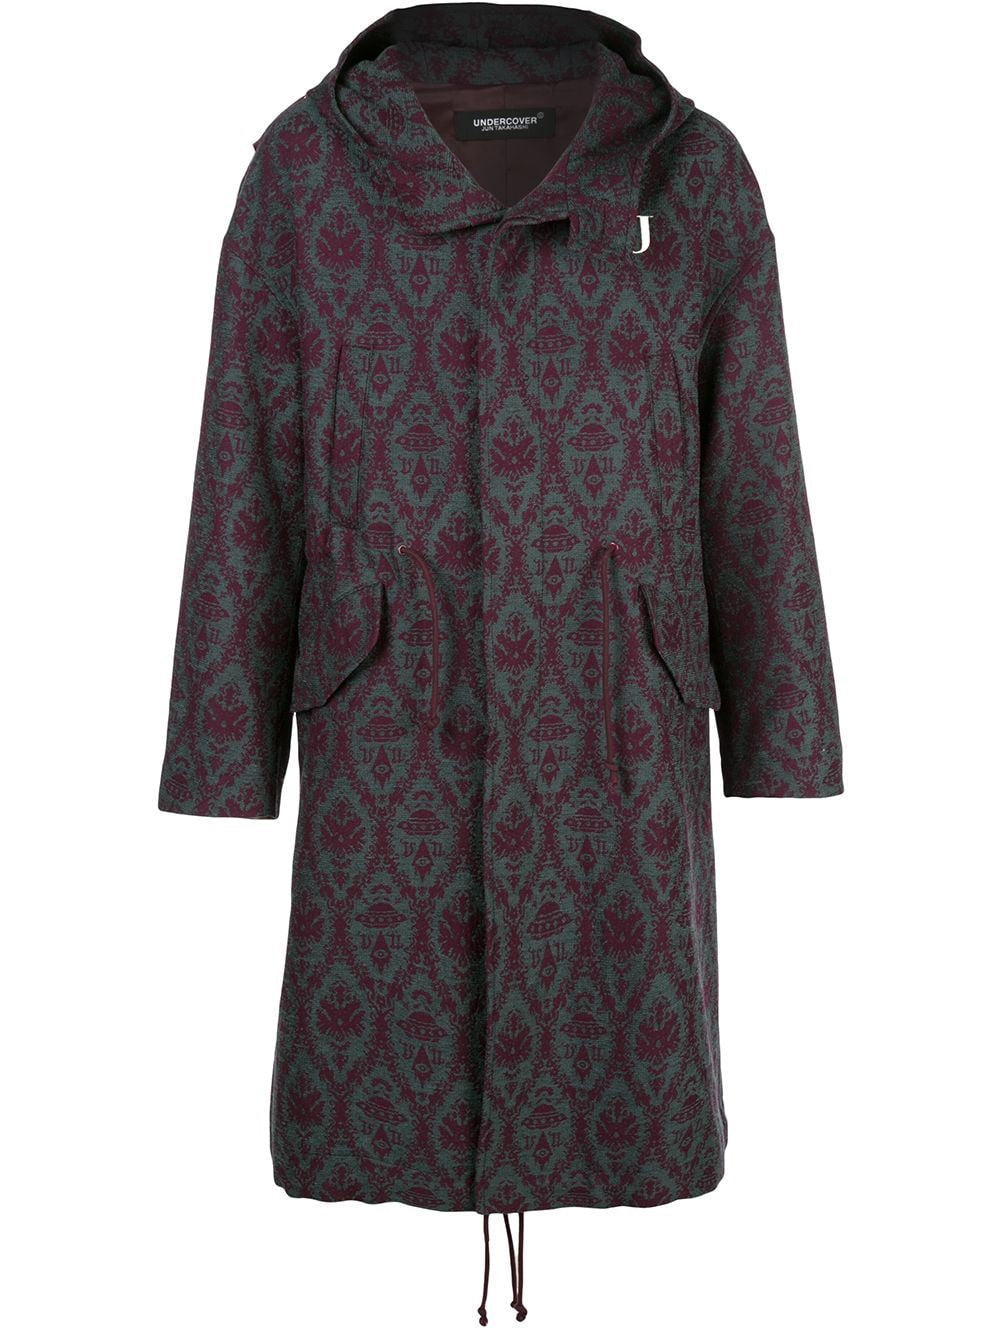 UNDERCOVER X VALENTINO JACQUARD HOODED COAT